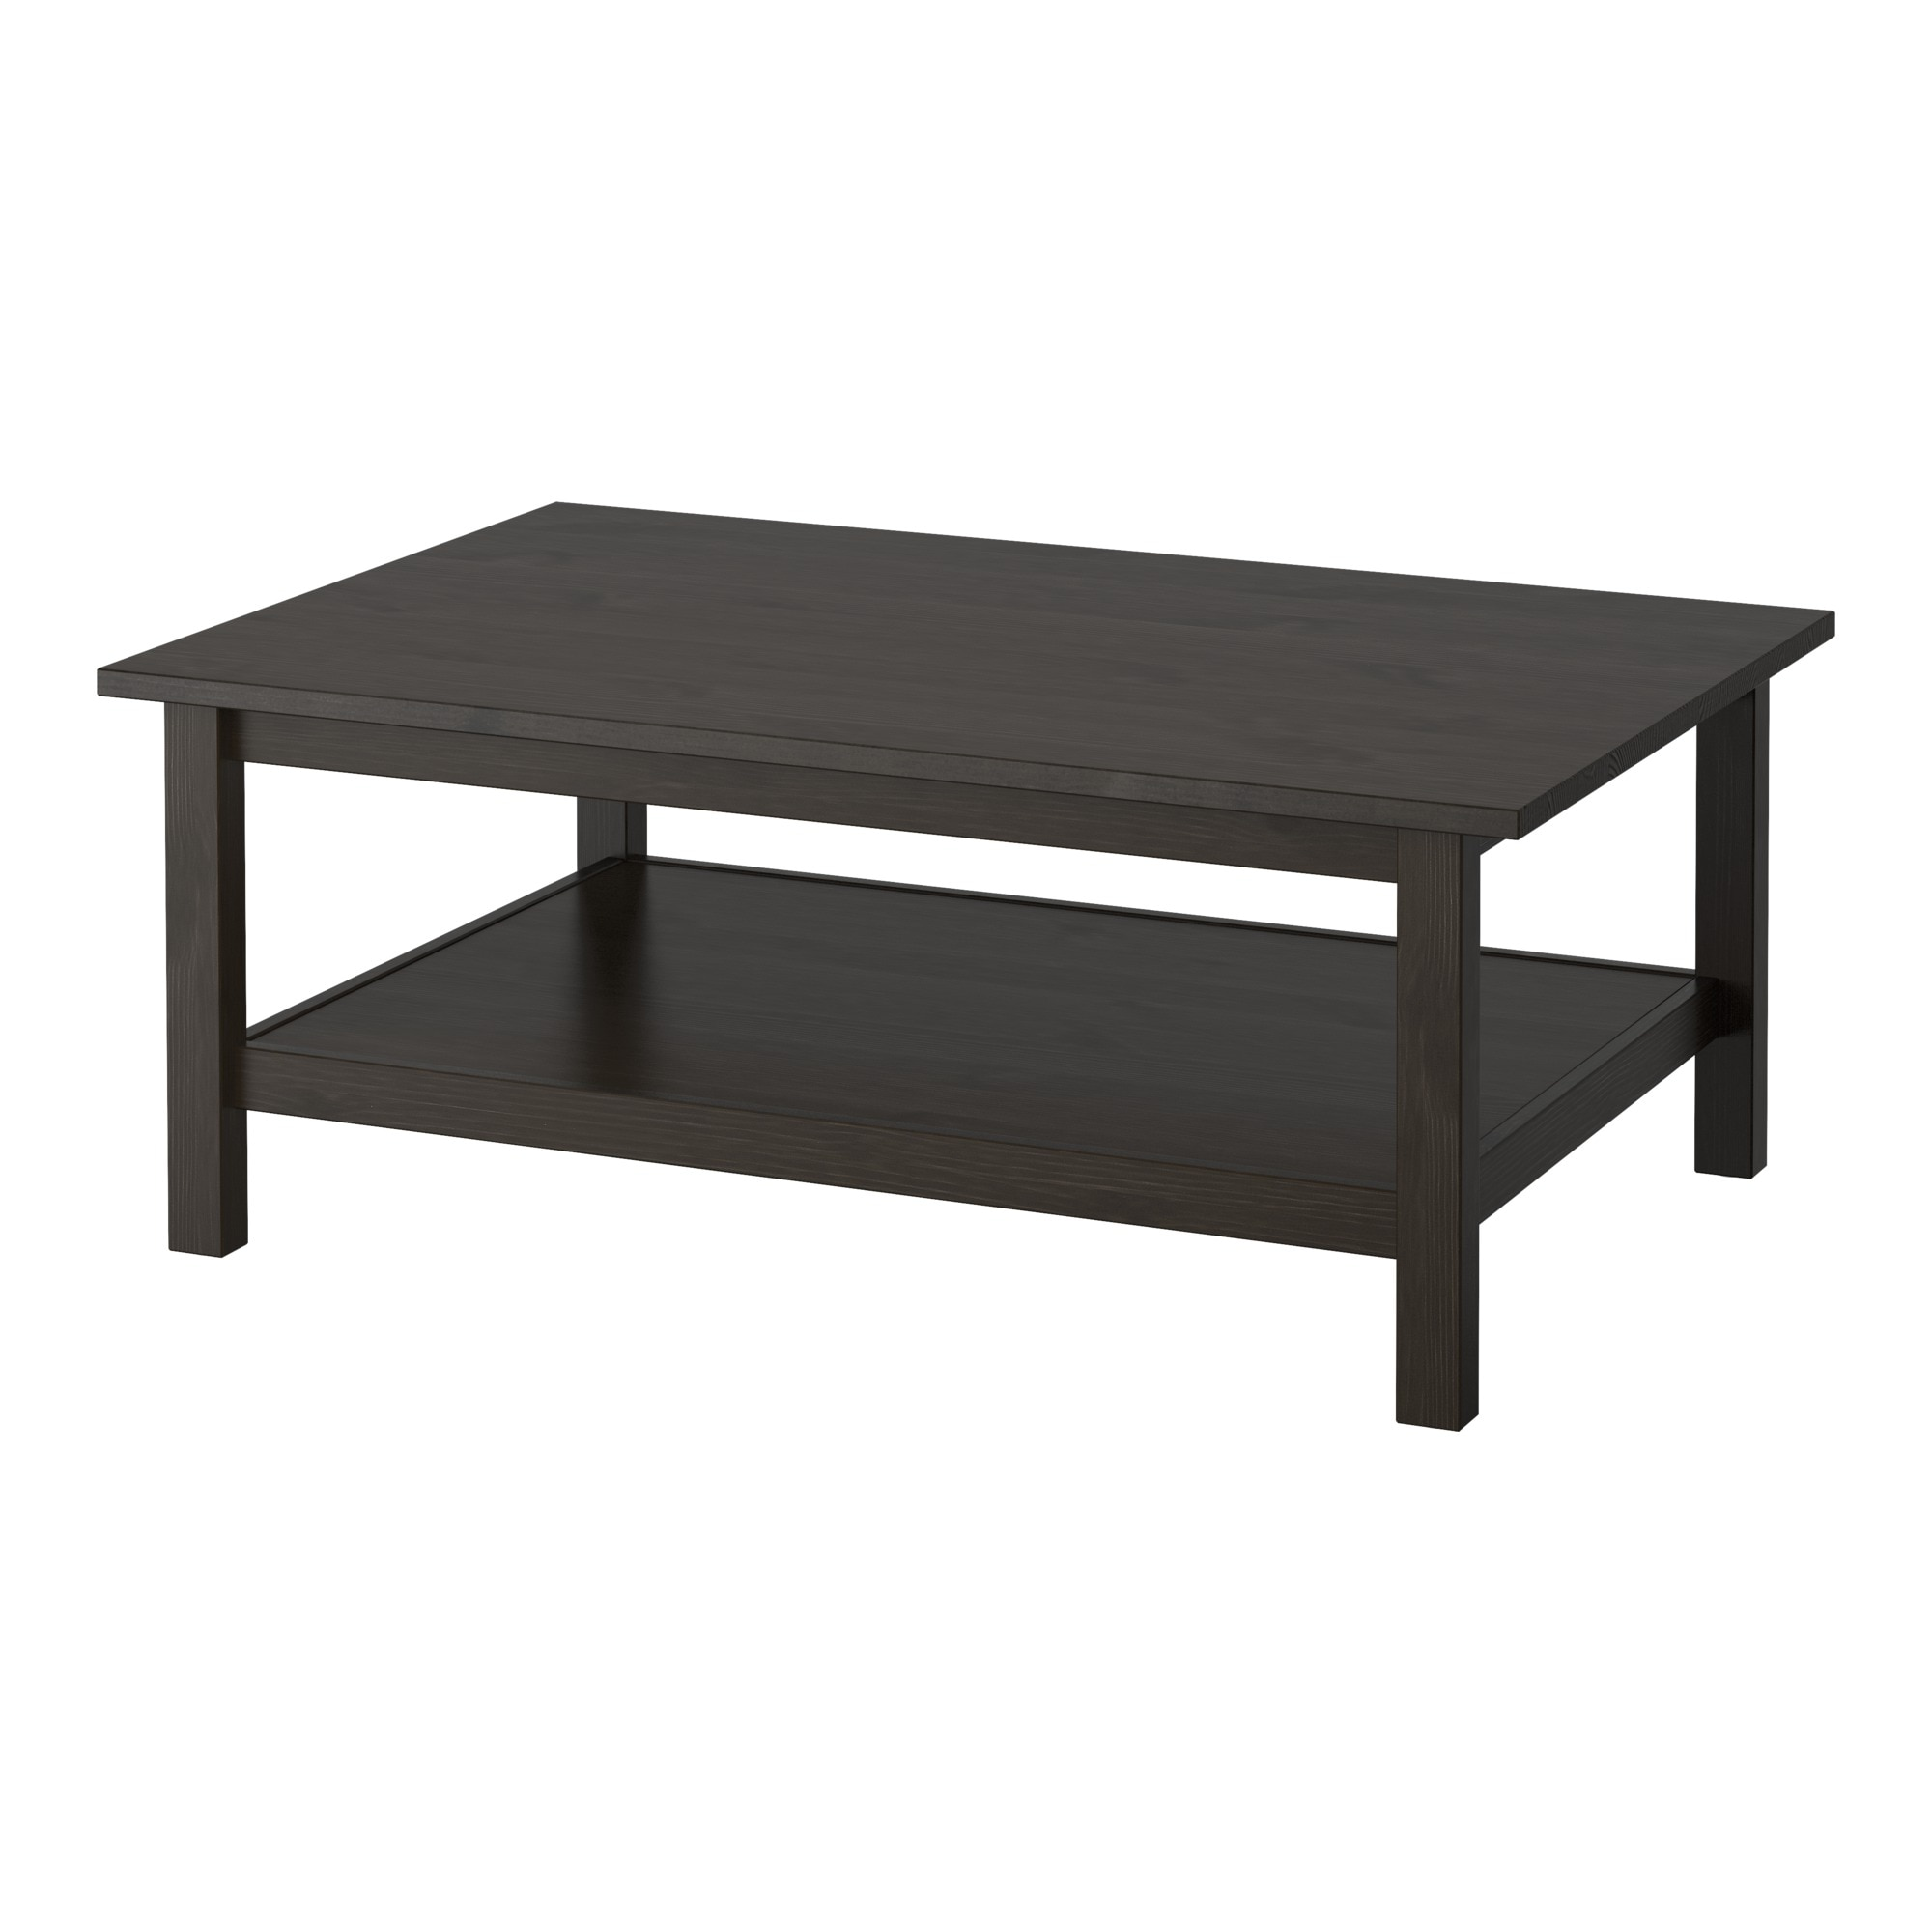 Black and wood coffee table - Black And Wood Coffee Table 1